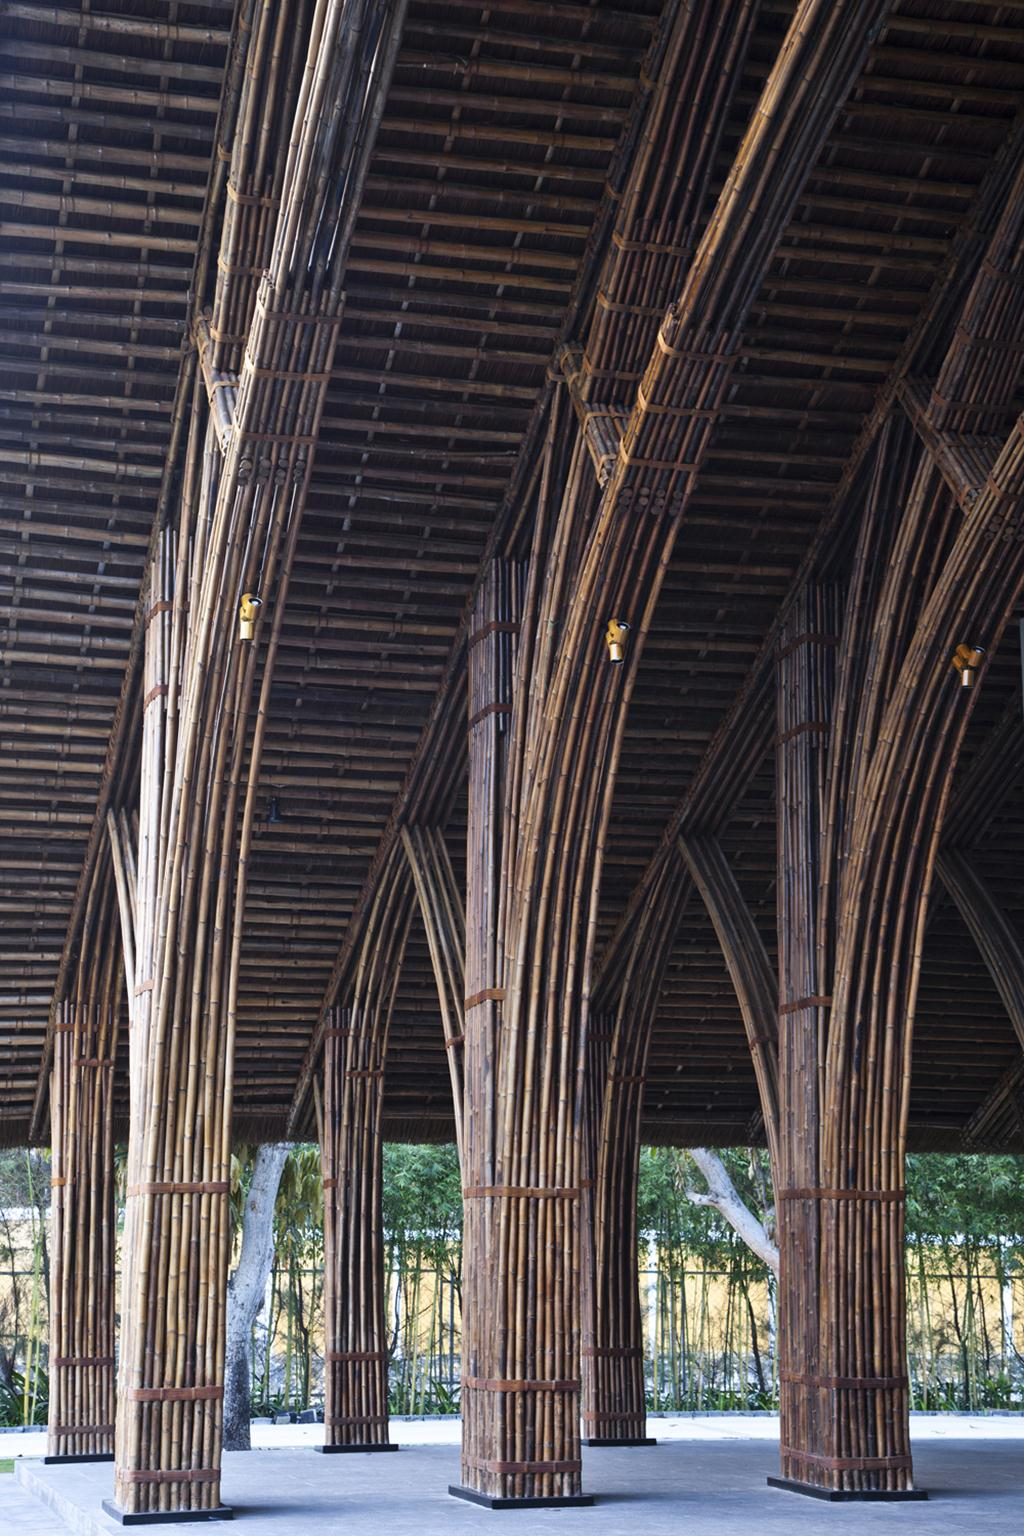 06-bamboo-structure-Copy.jpg